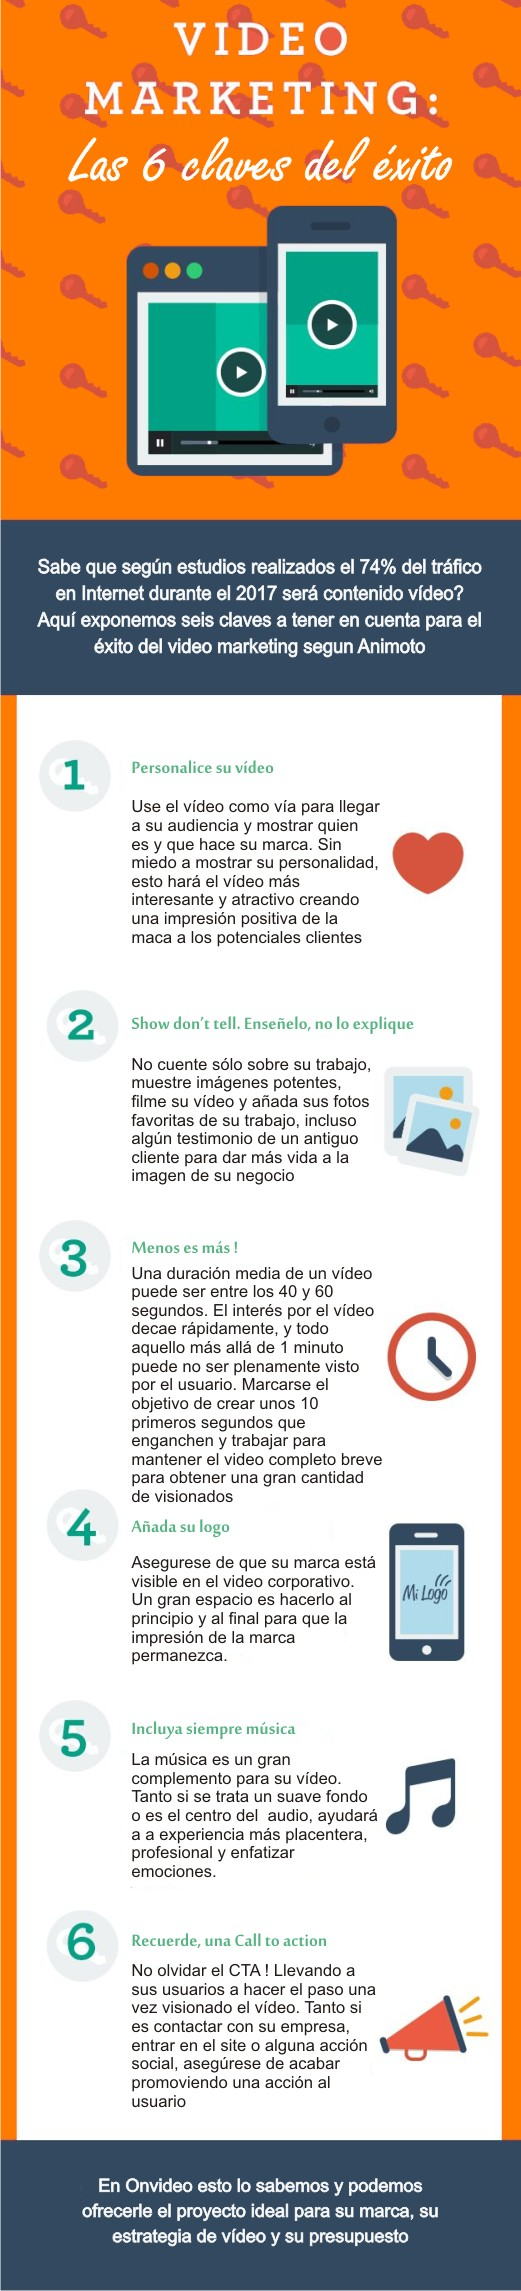 Video Marketing 6 claves